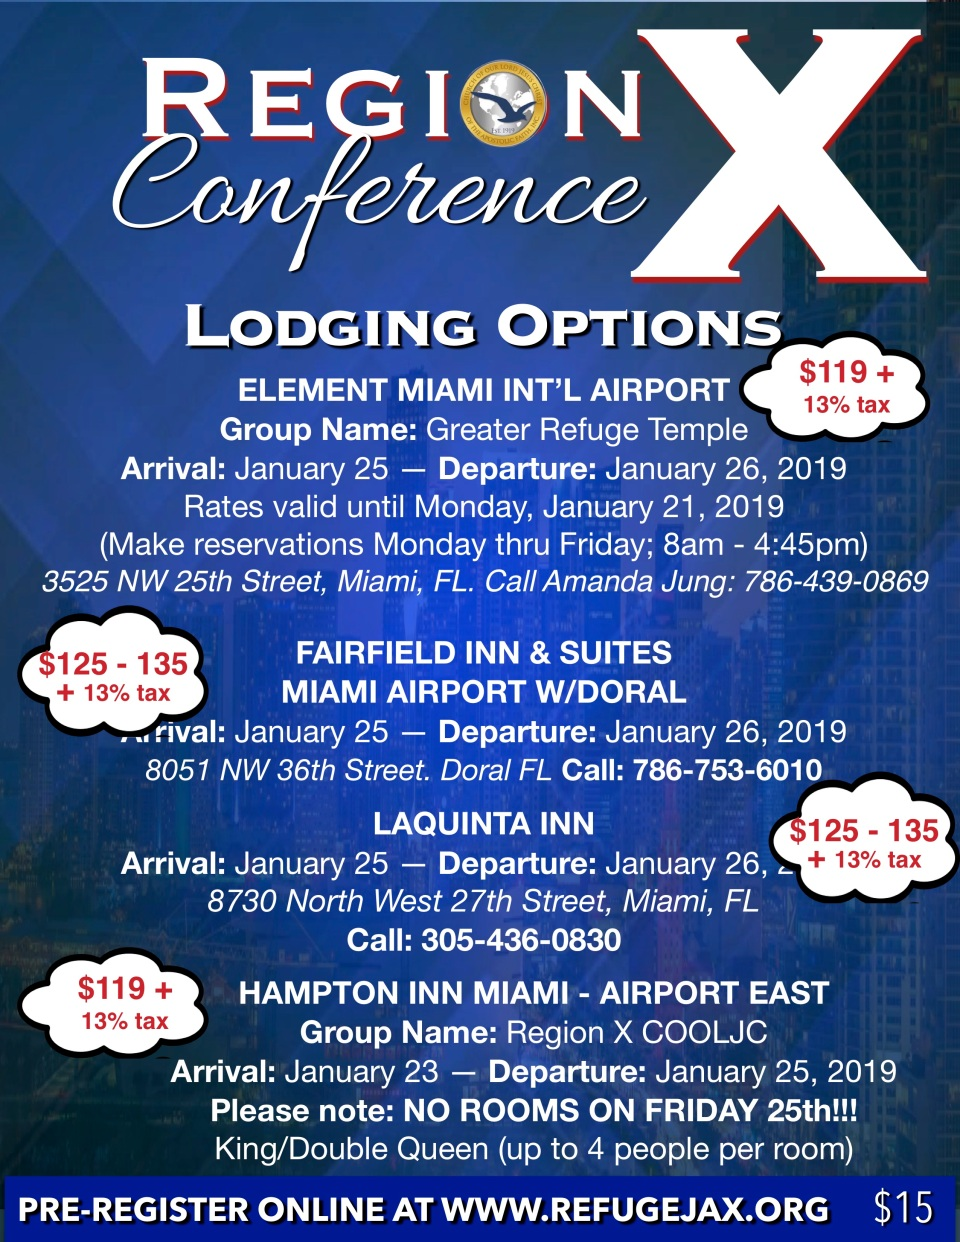 region x conference flyer 2019 lodging